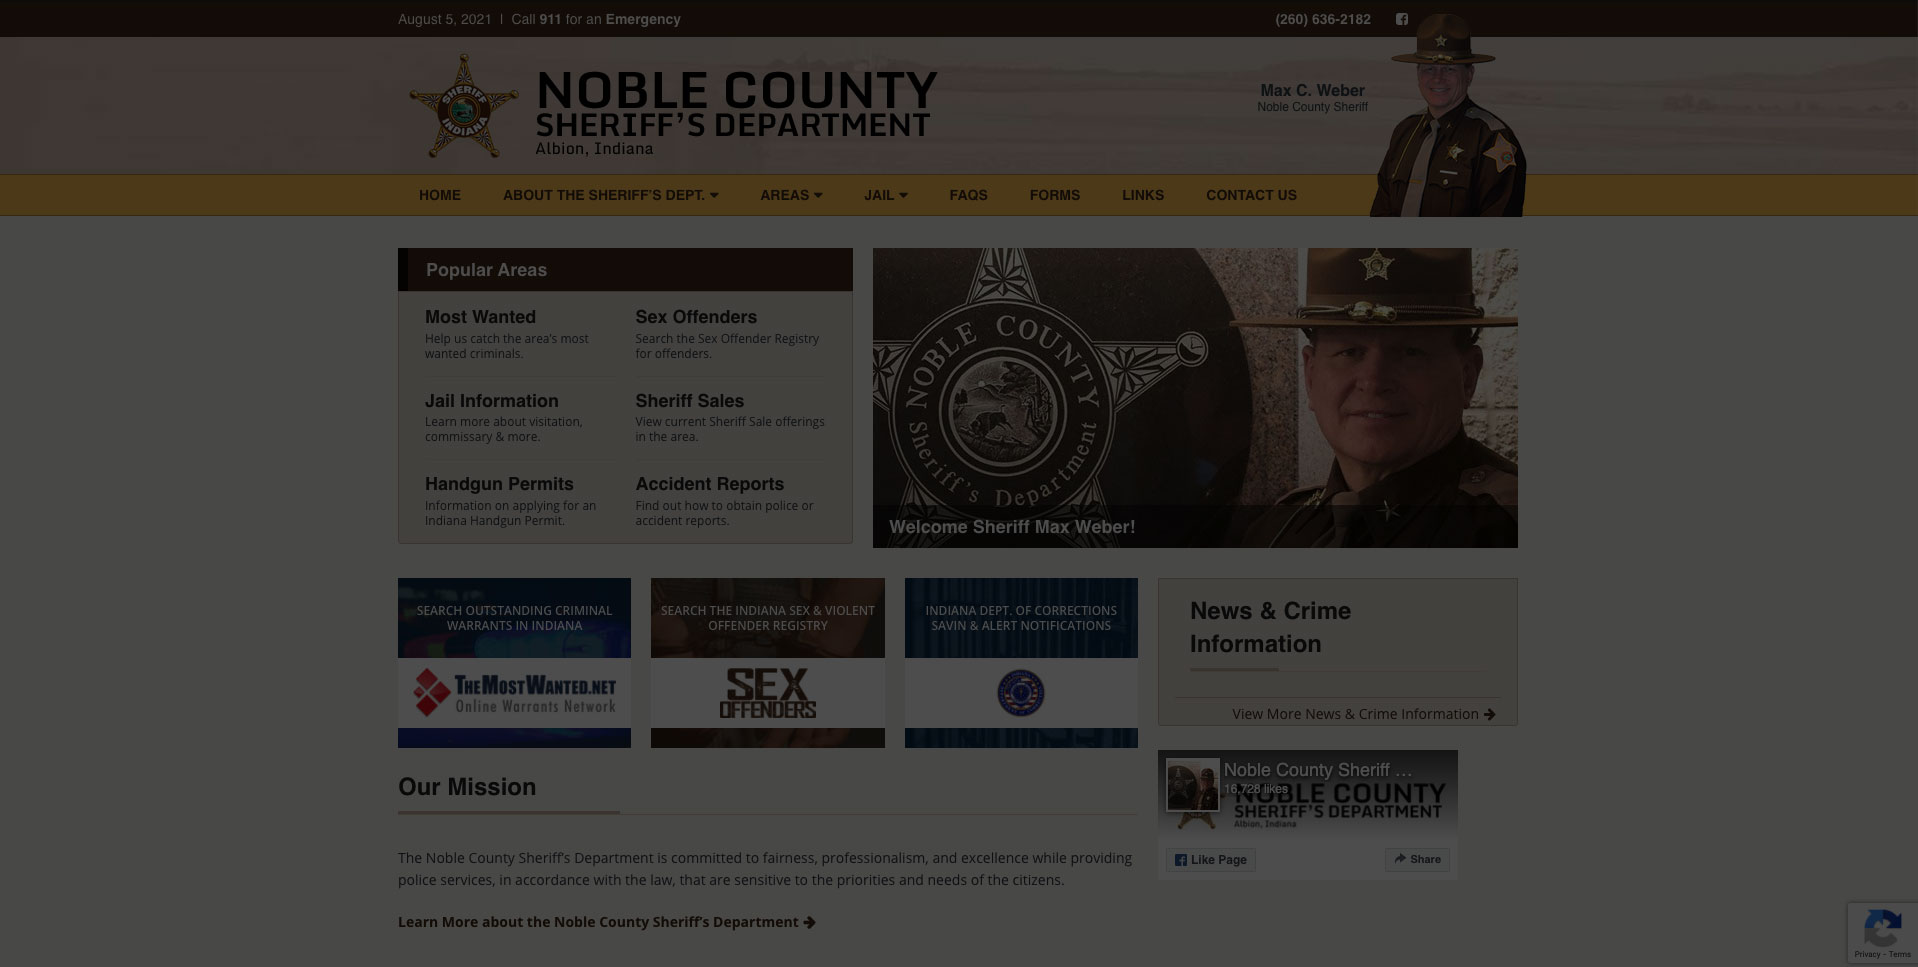 Noble County Sheriff